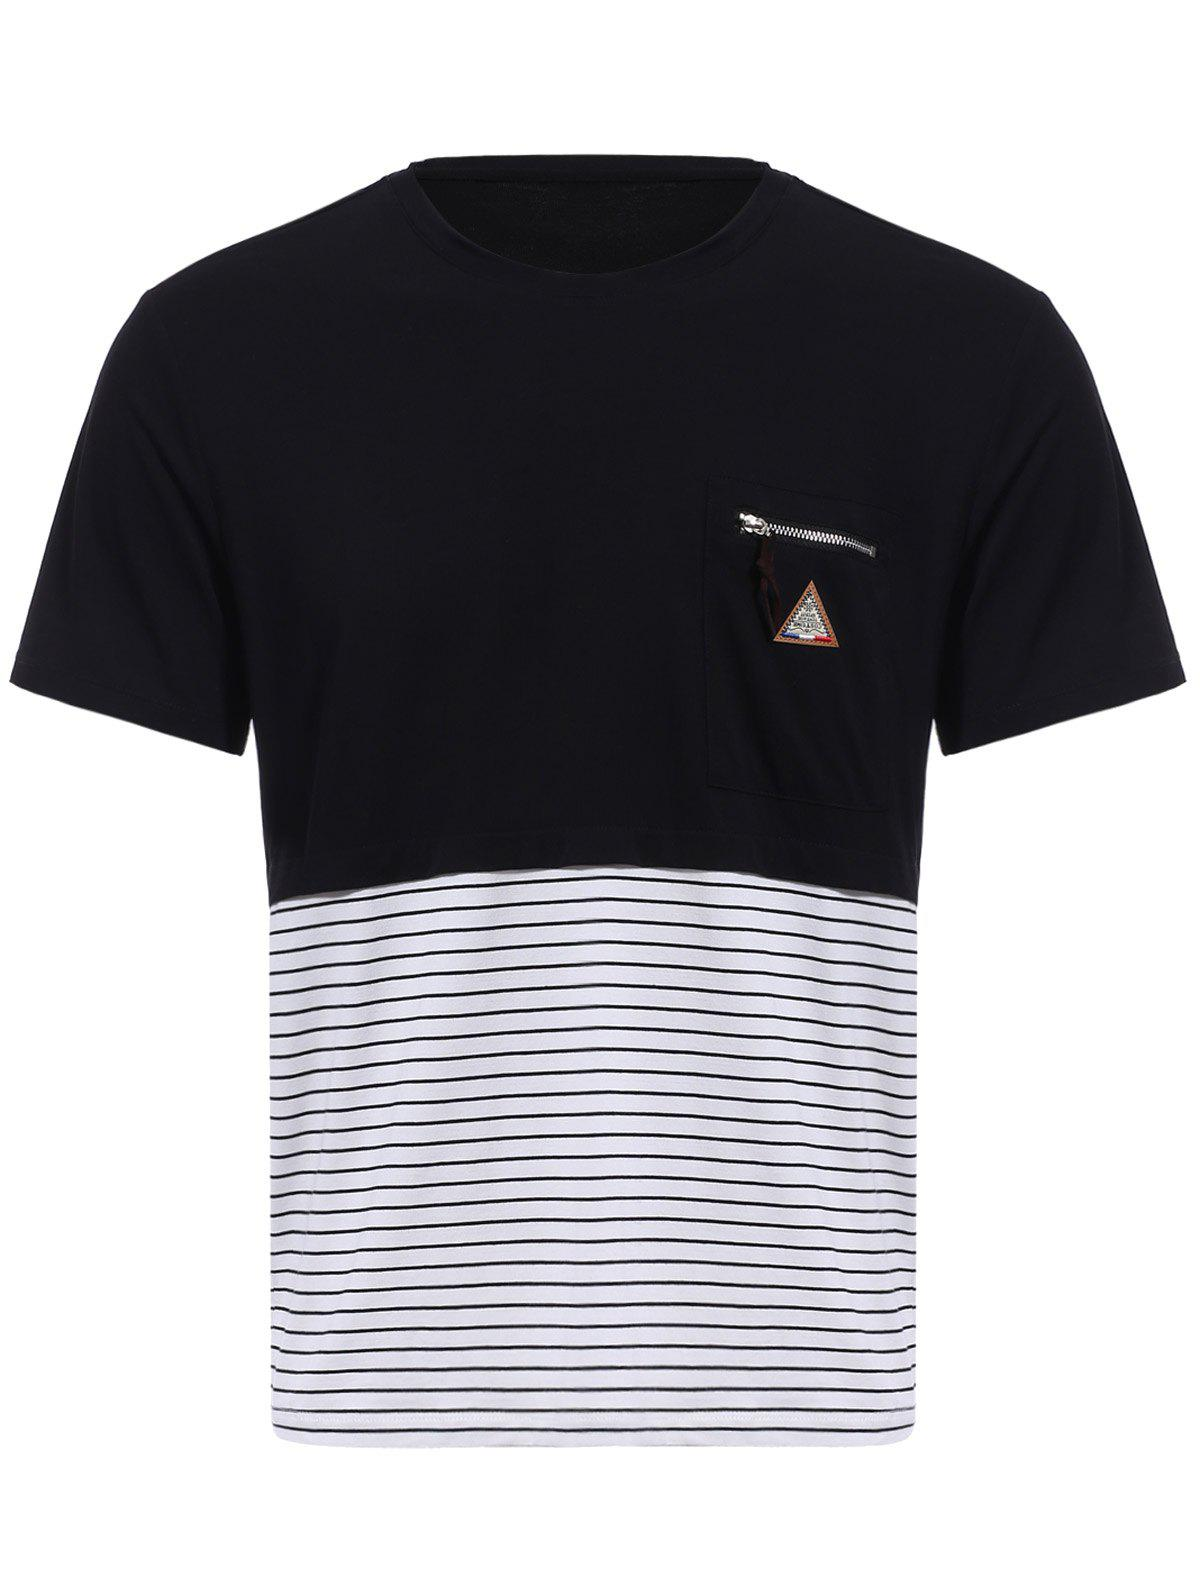 Chic Vogue Round Neck Zipper Color Block Stripes Spliced Short Sleeves T-Shirt For Men